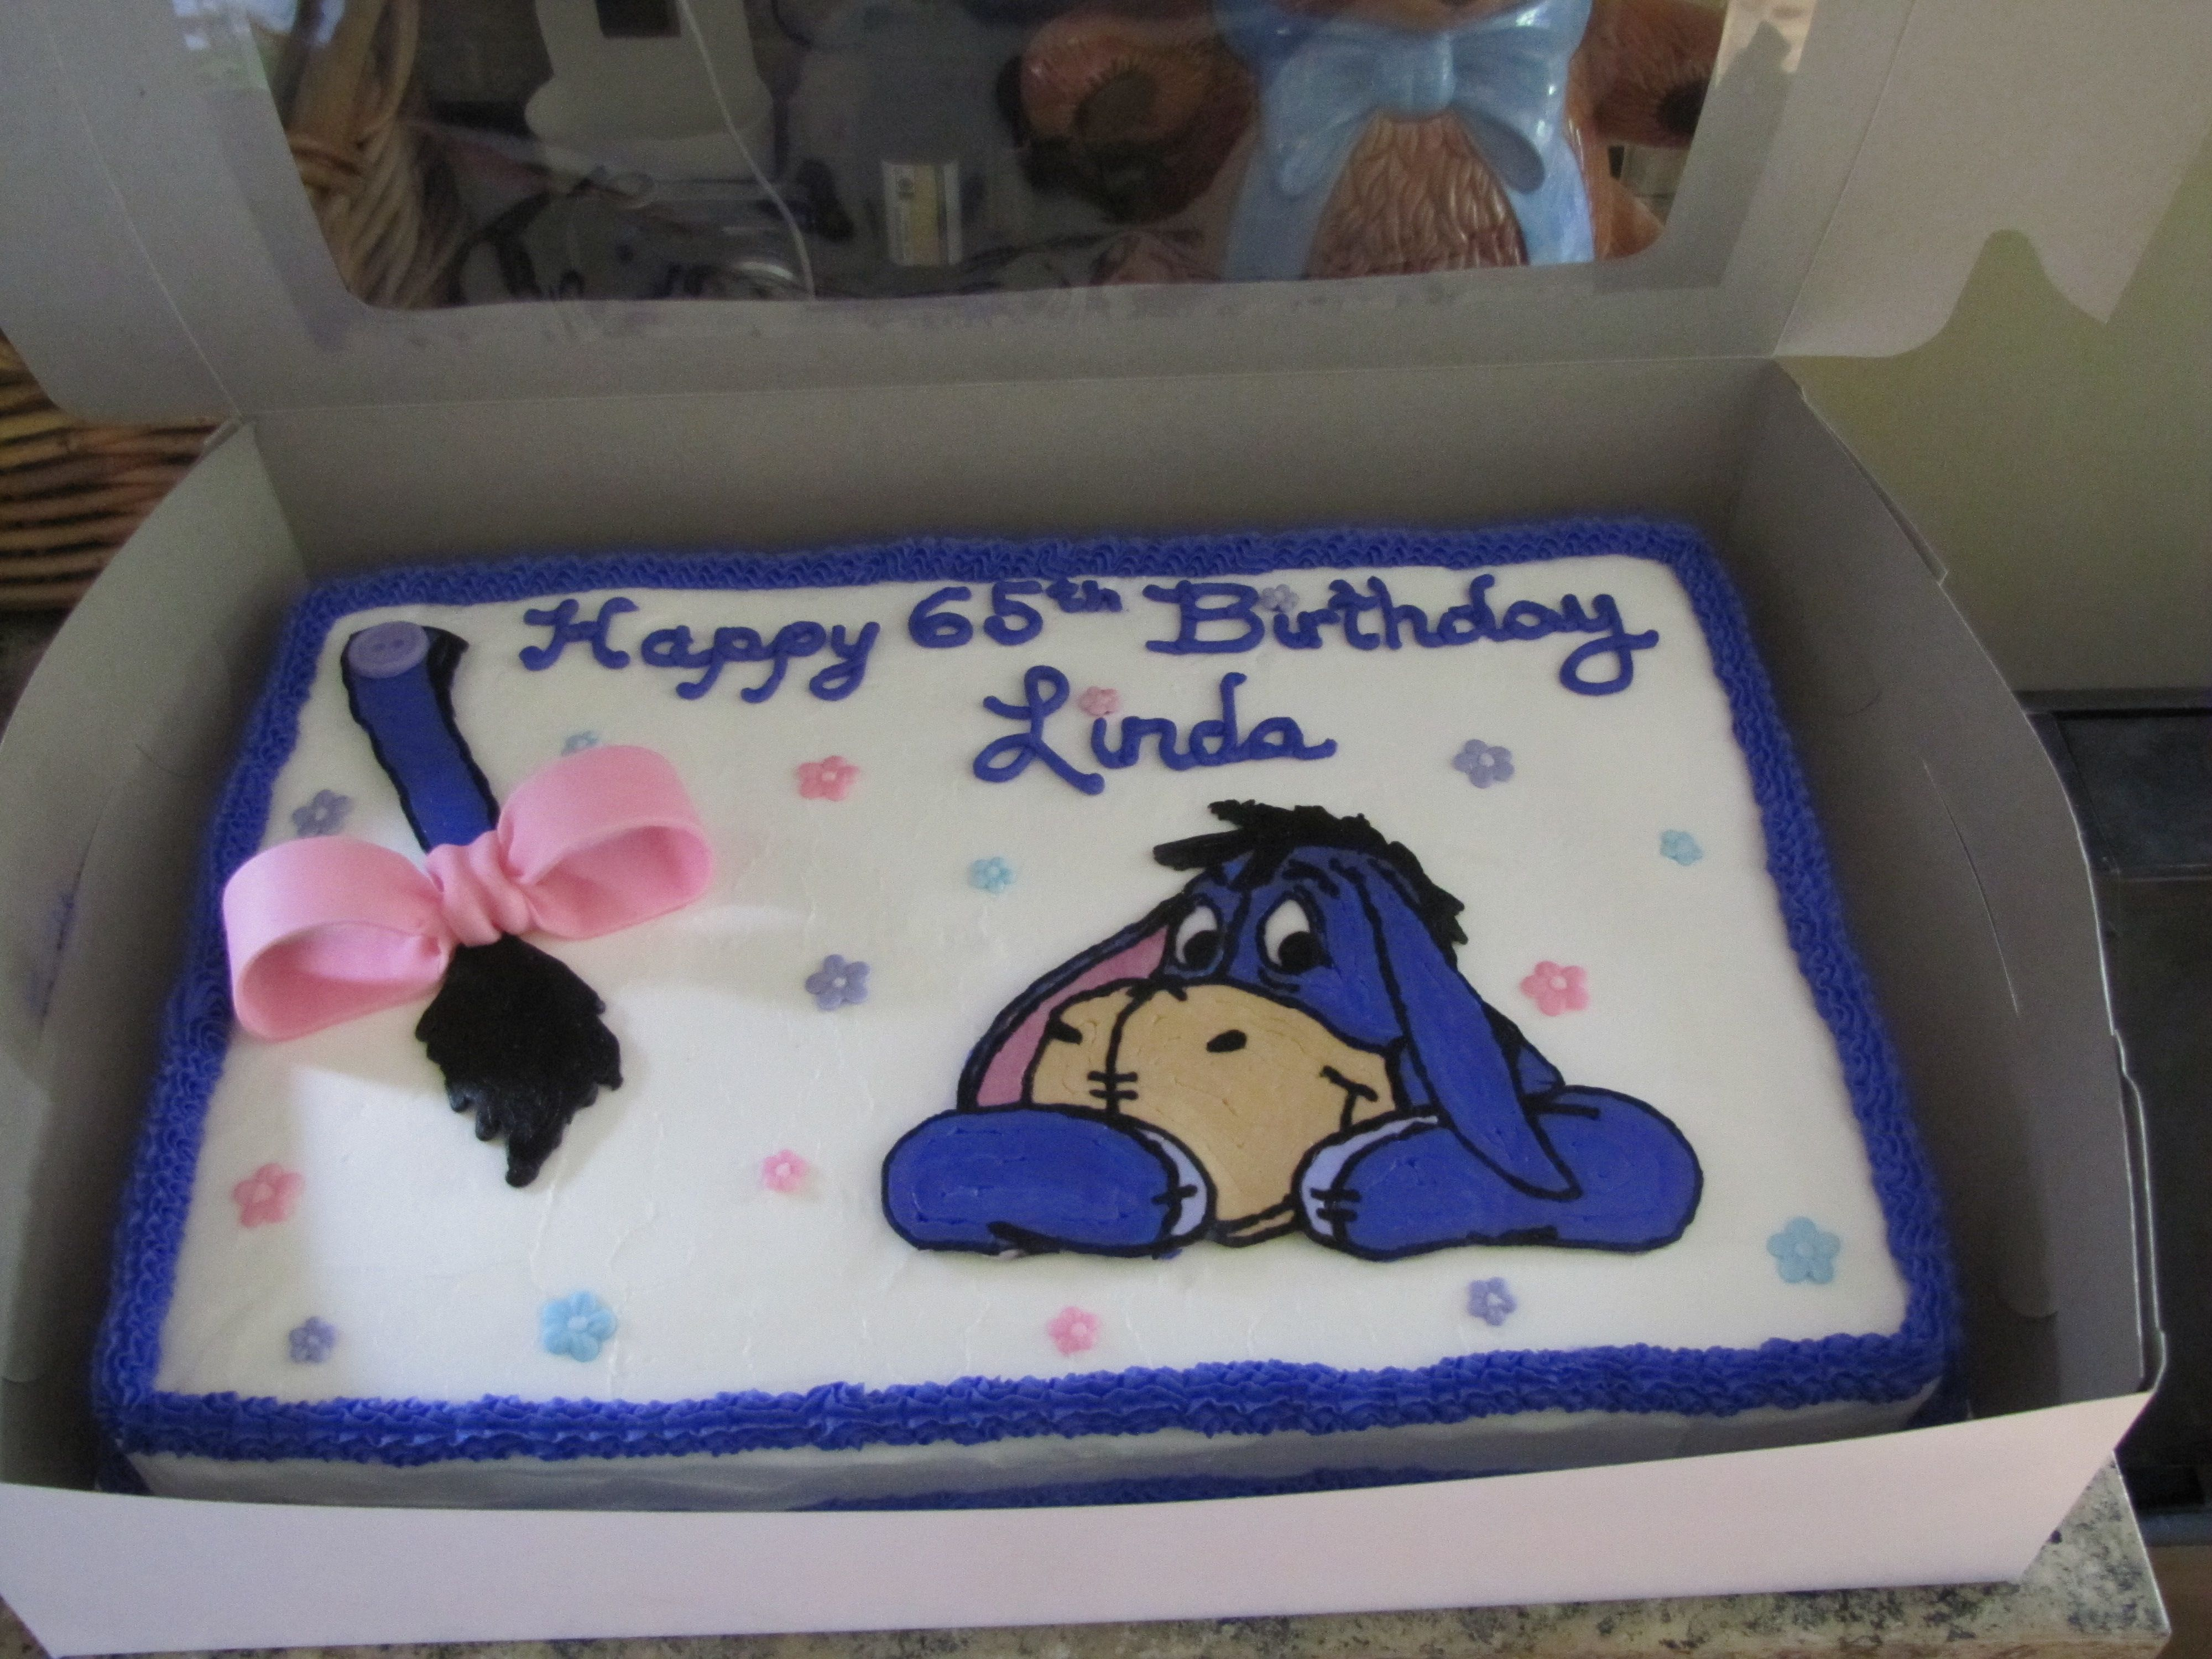 Awe Inspiring Wiltoncontest My First Character Cake Using Wilton Method 1 2 Funny Birthday Cards Online Inifofree Goldxyz